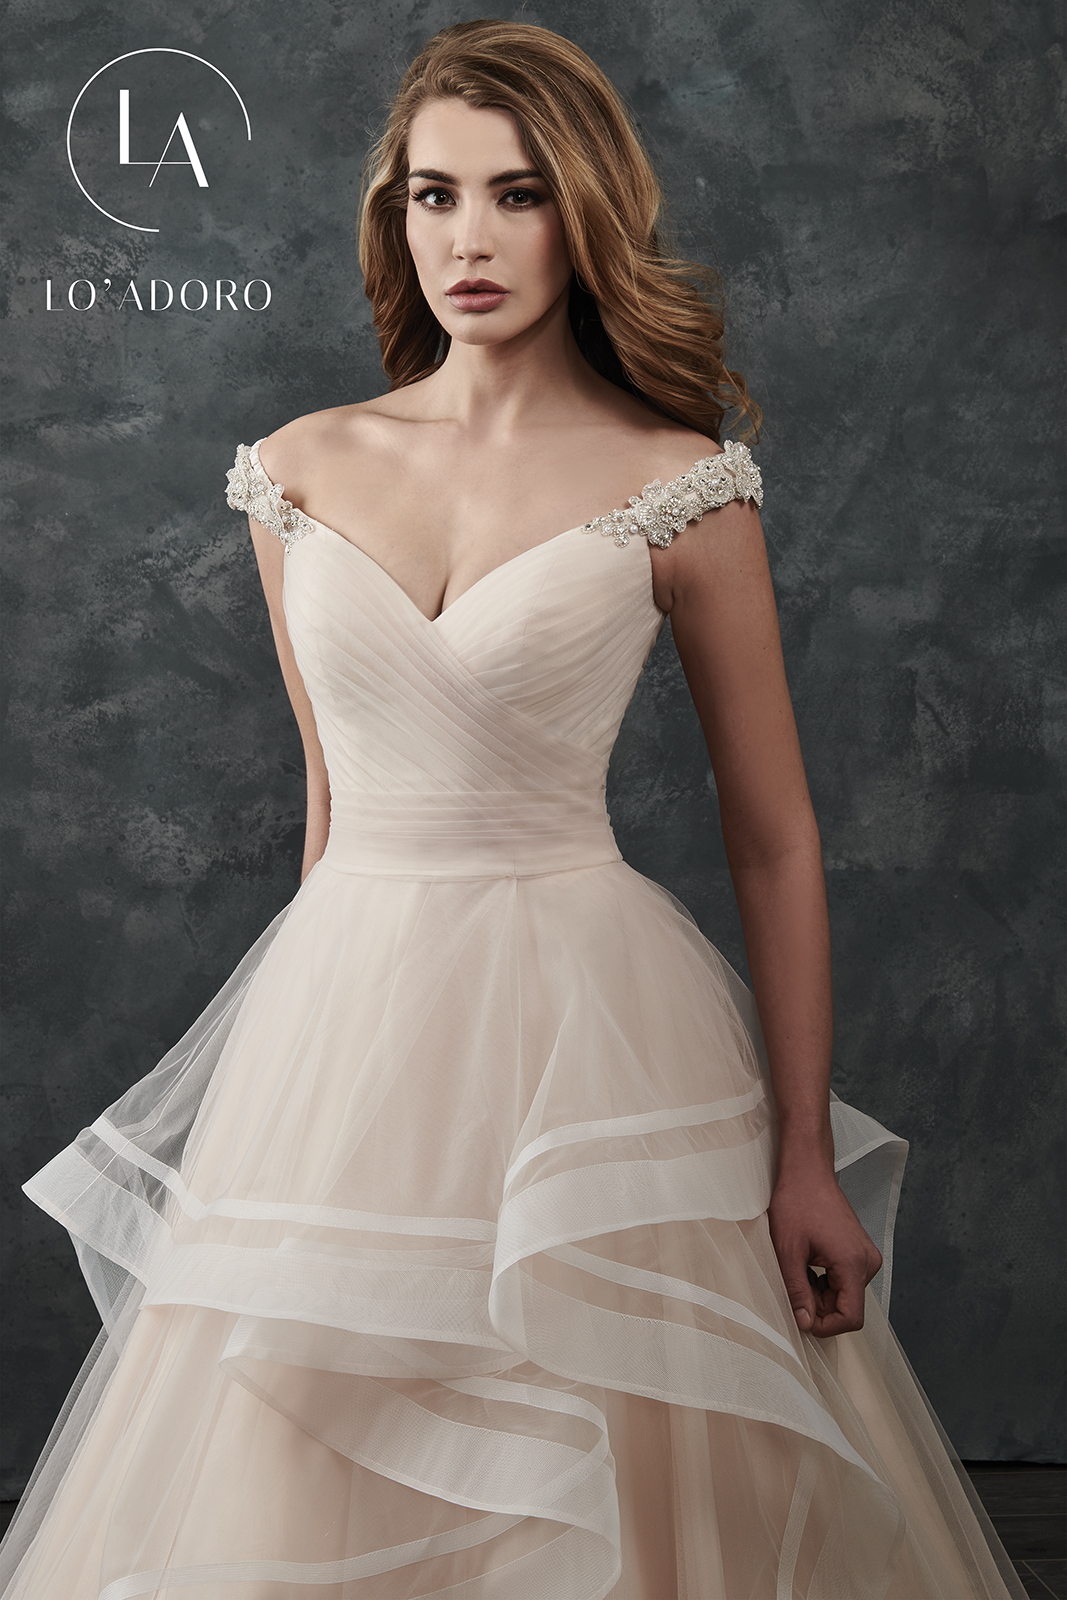 Off The Shoulder Ball Gowns Lo' Adoro Bridal in Champagne Color